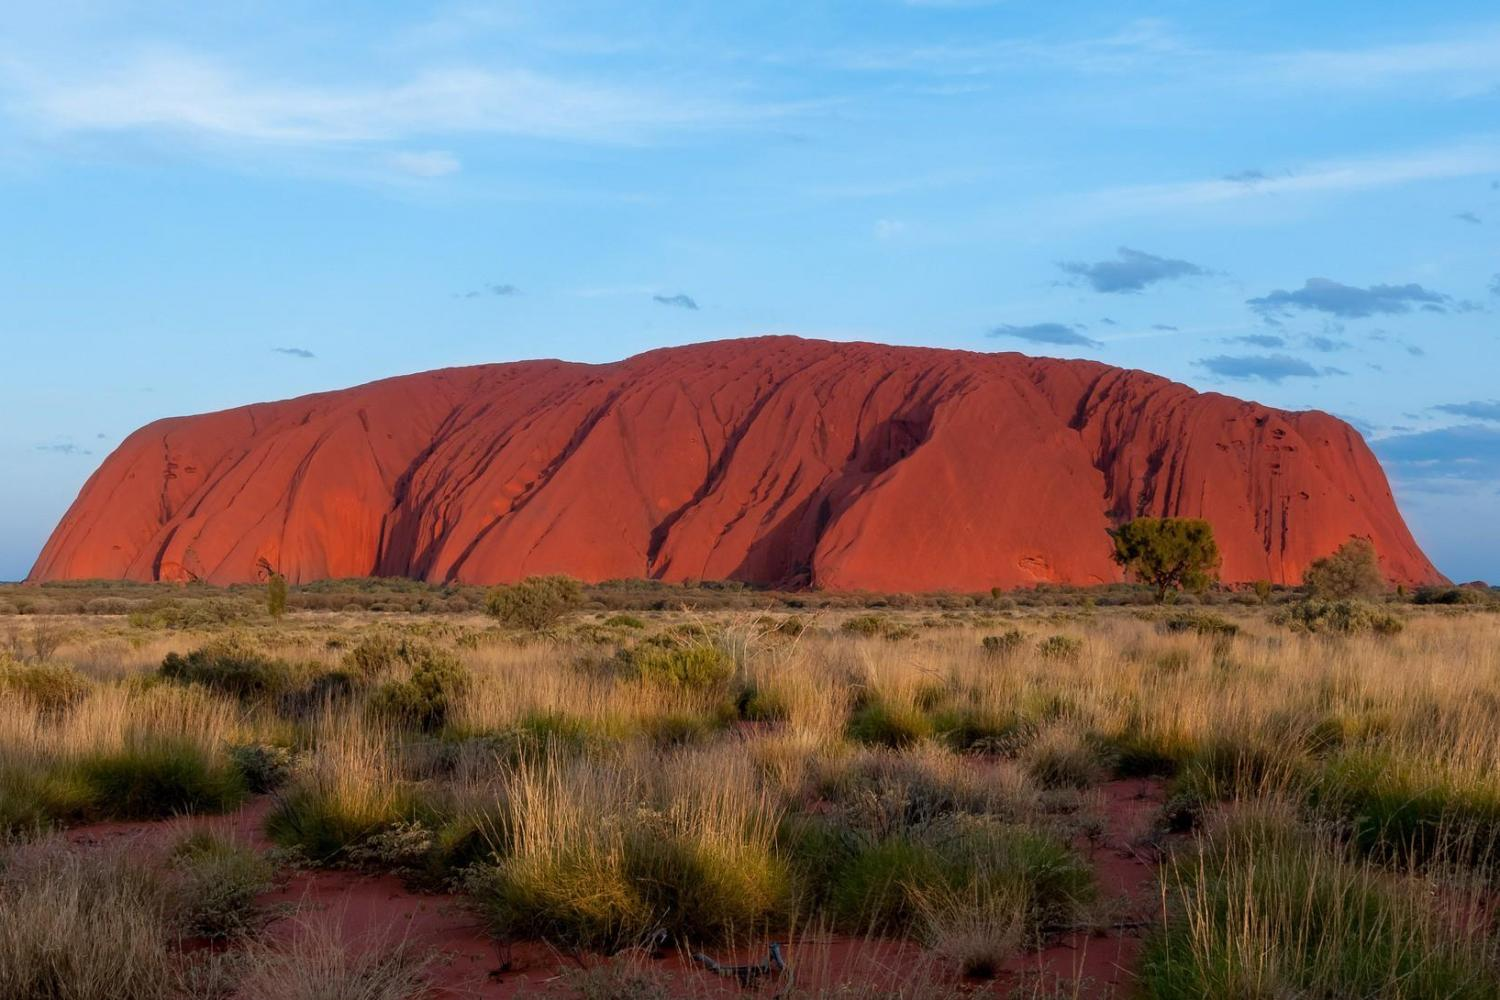 Take a complete circuit tour around the base of Uluru learning the geology and legends of the rock